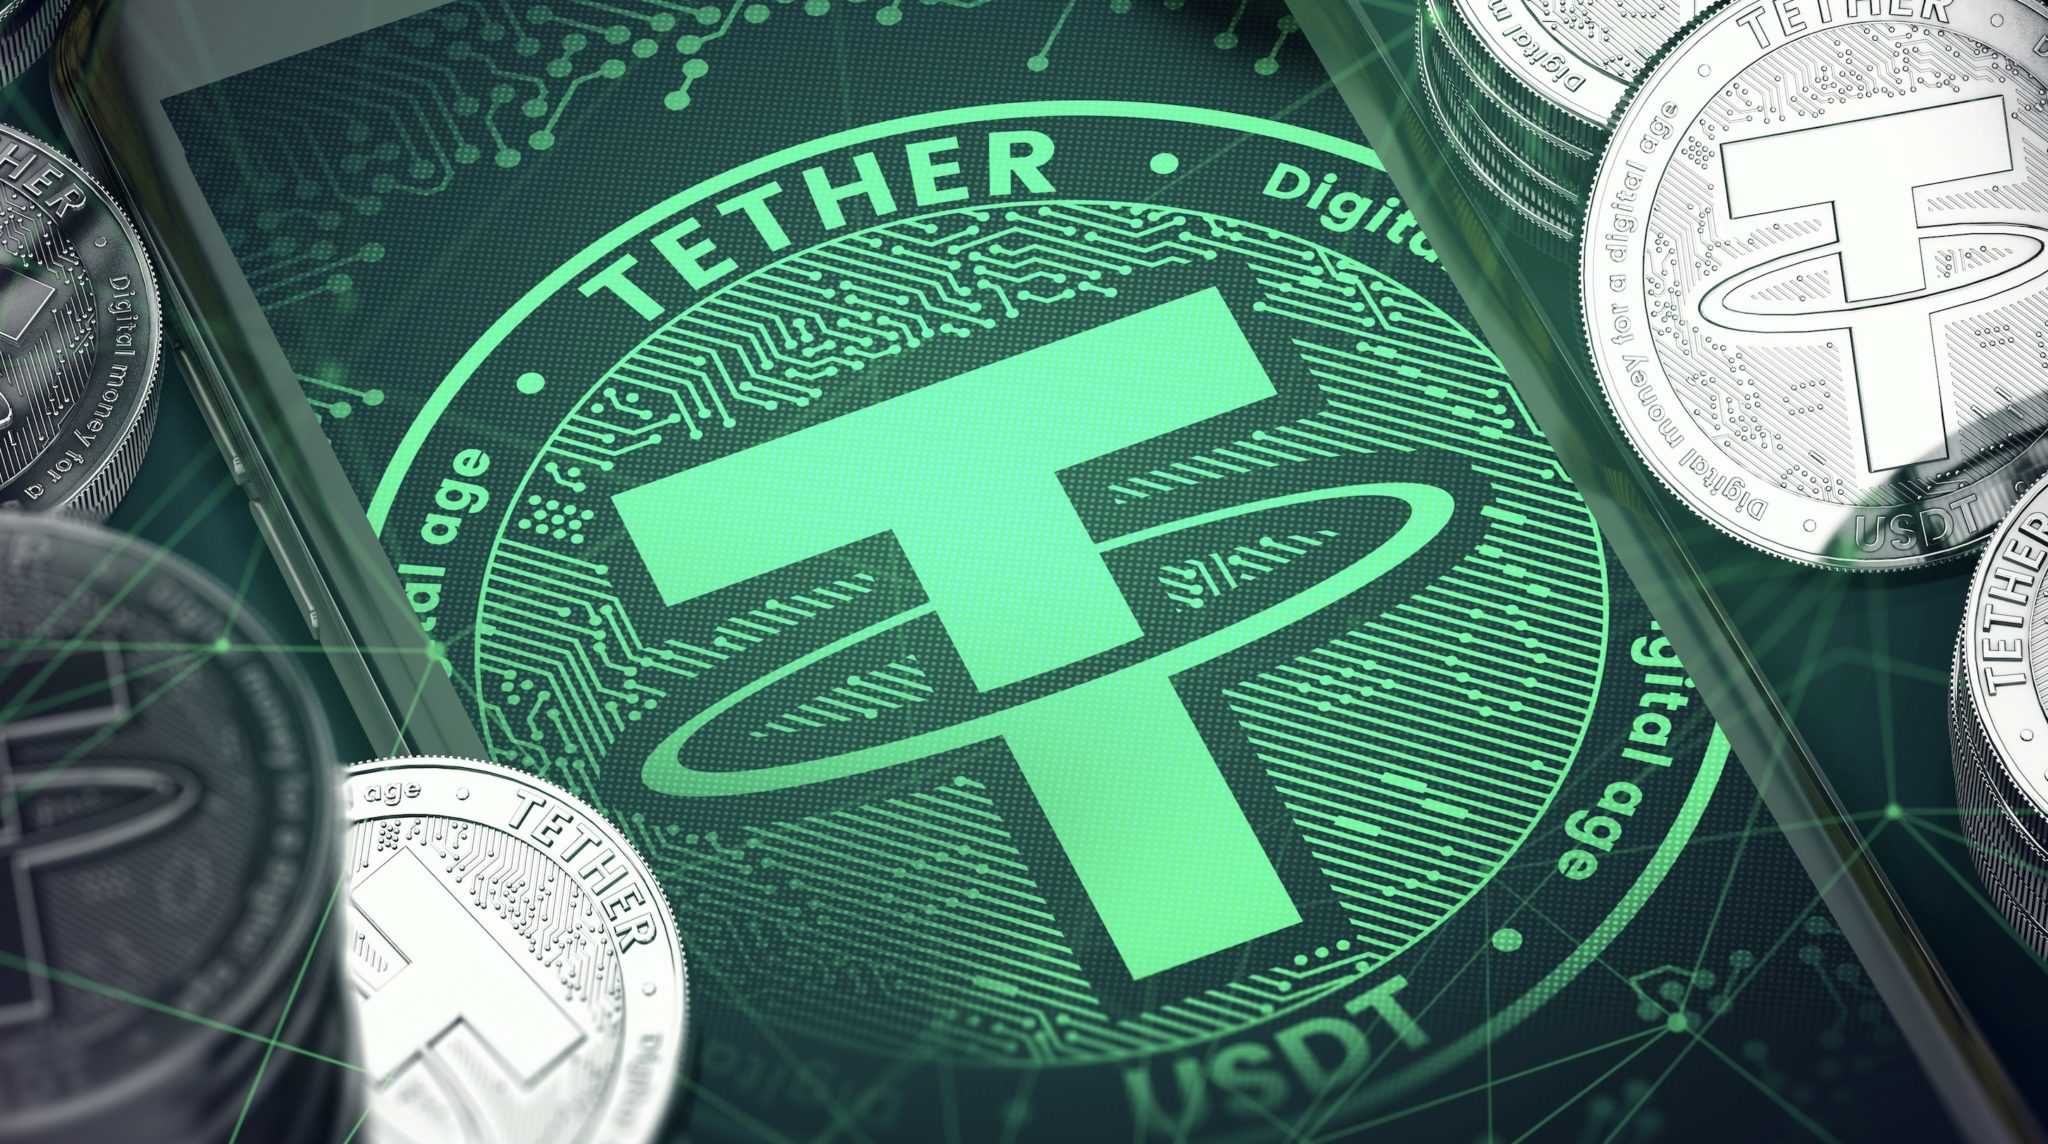 While BTC, ETH & LTC Lose Billions, Tether Stands Out